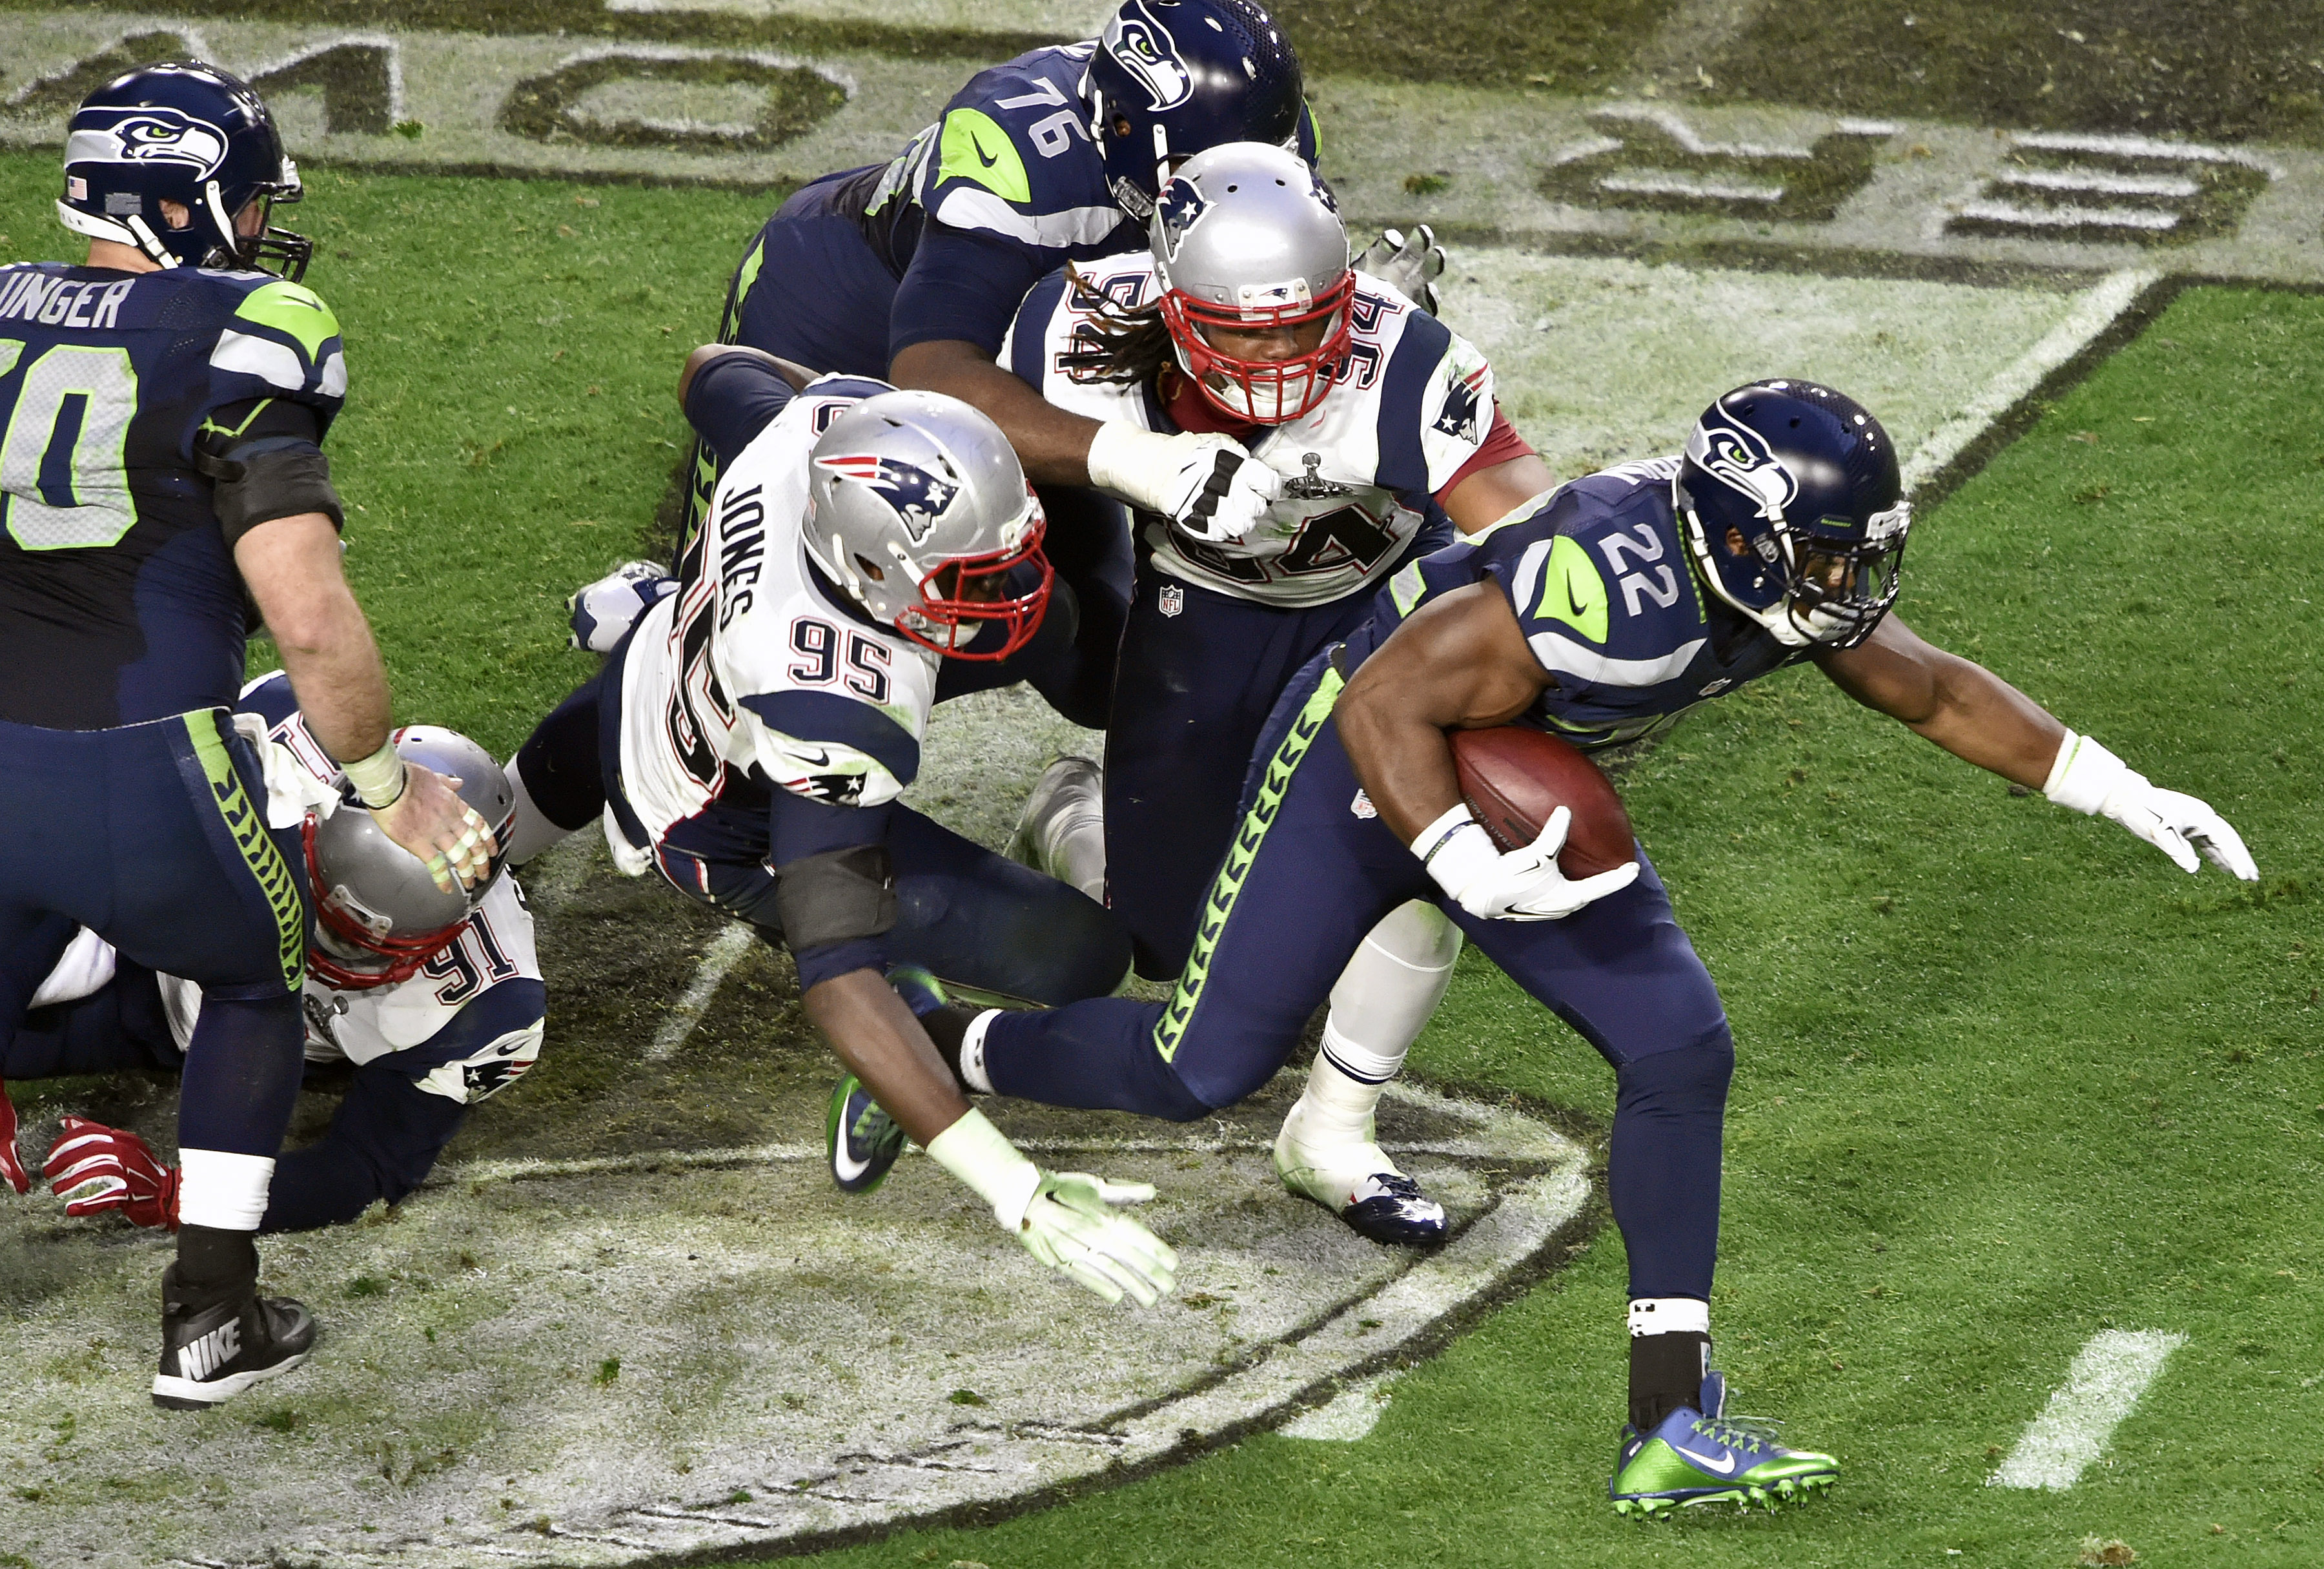 Robert Turbin #22 of the Seattle Seahawks carries the ball against the New England Patriots during Super Bowl XLIX February 1, 2015 at the University of Phoenix Stadium in Glendale, Arizona.